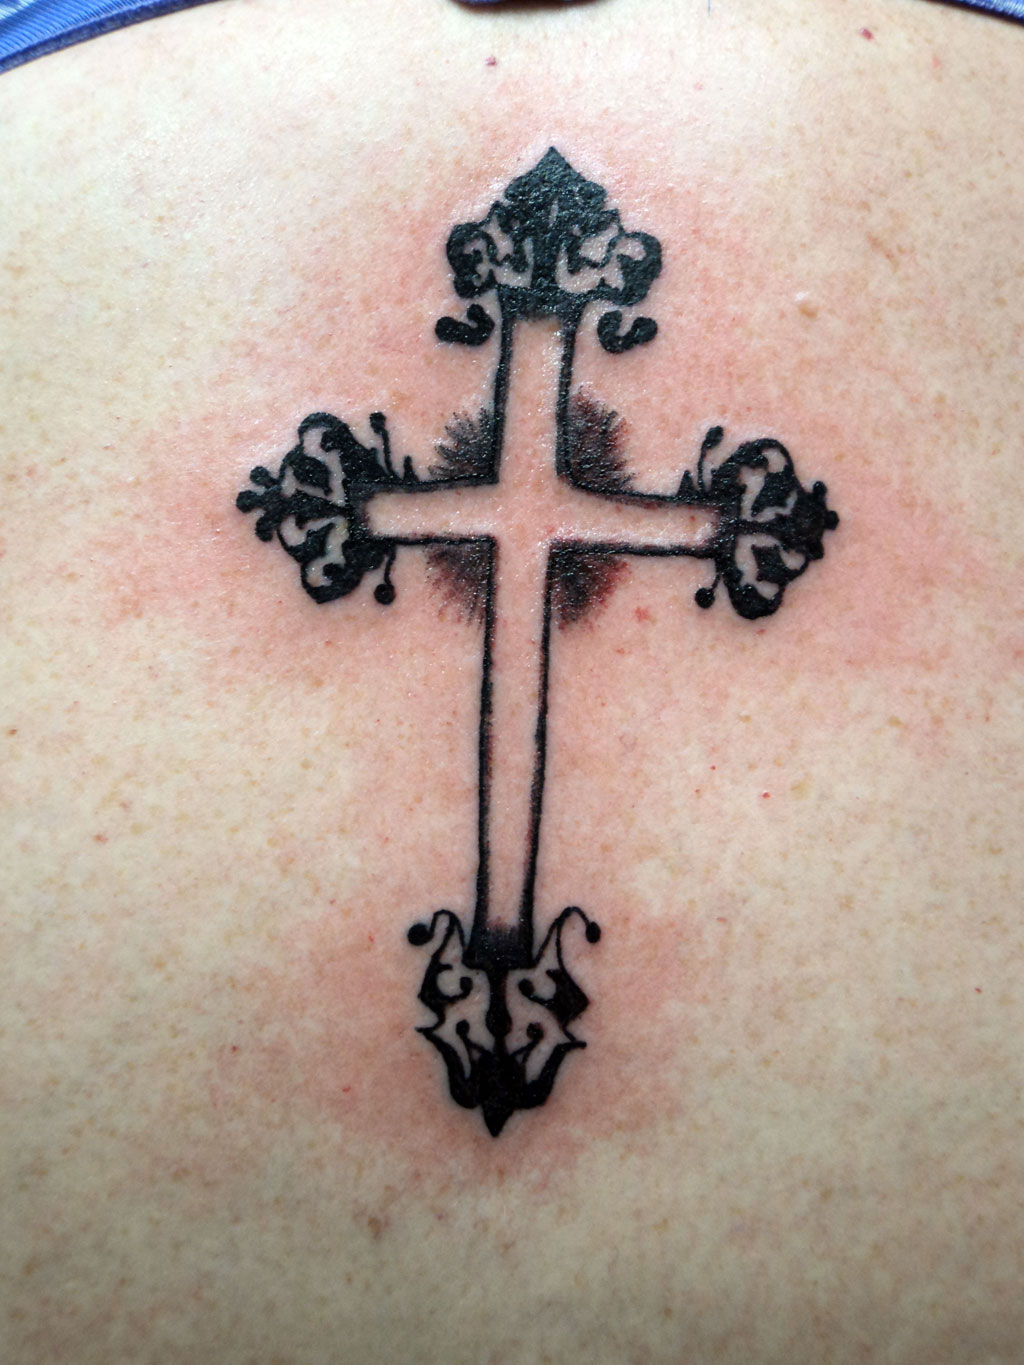 Black Cross Tattoo Designs